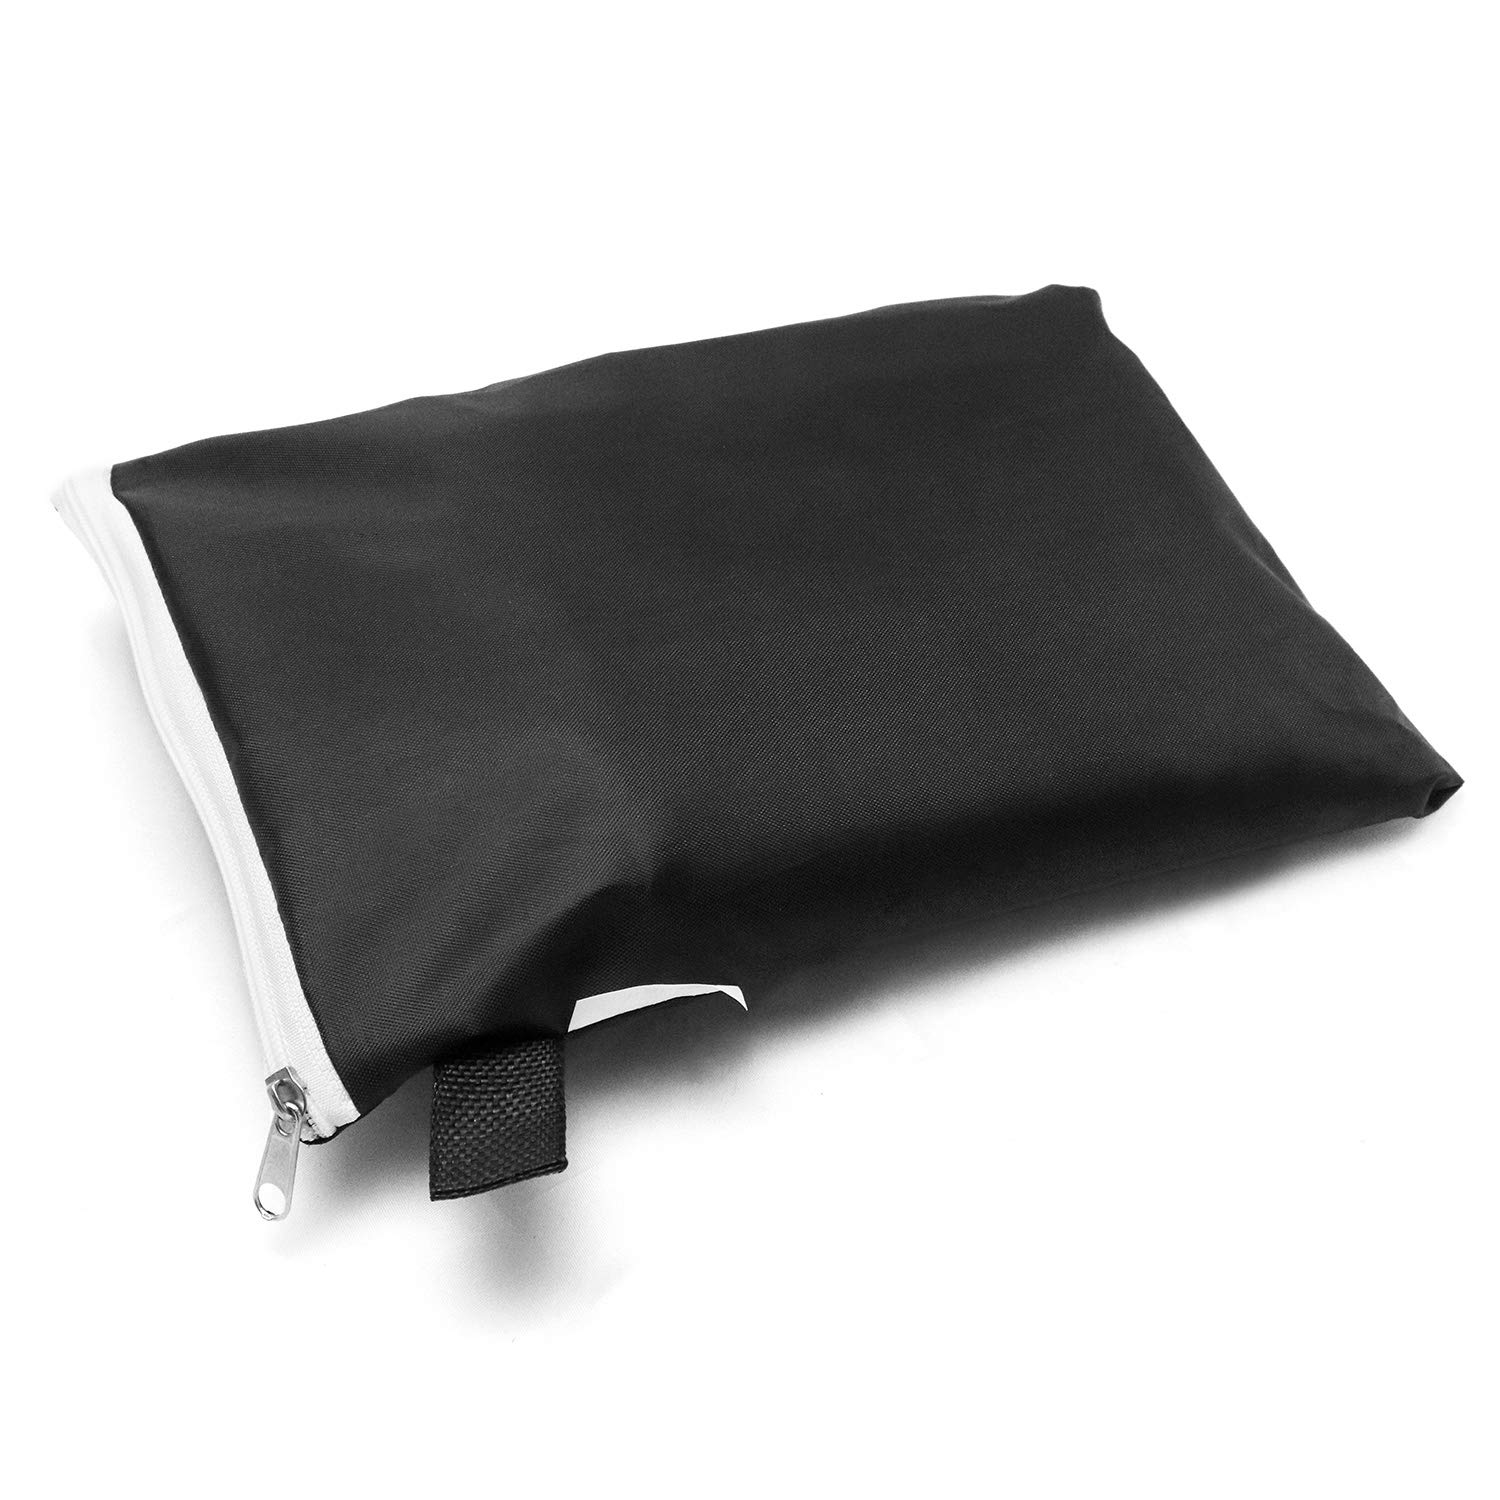 QWORK 55 Gallon Drum Cover for Barrel